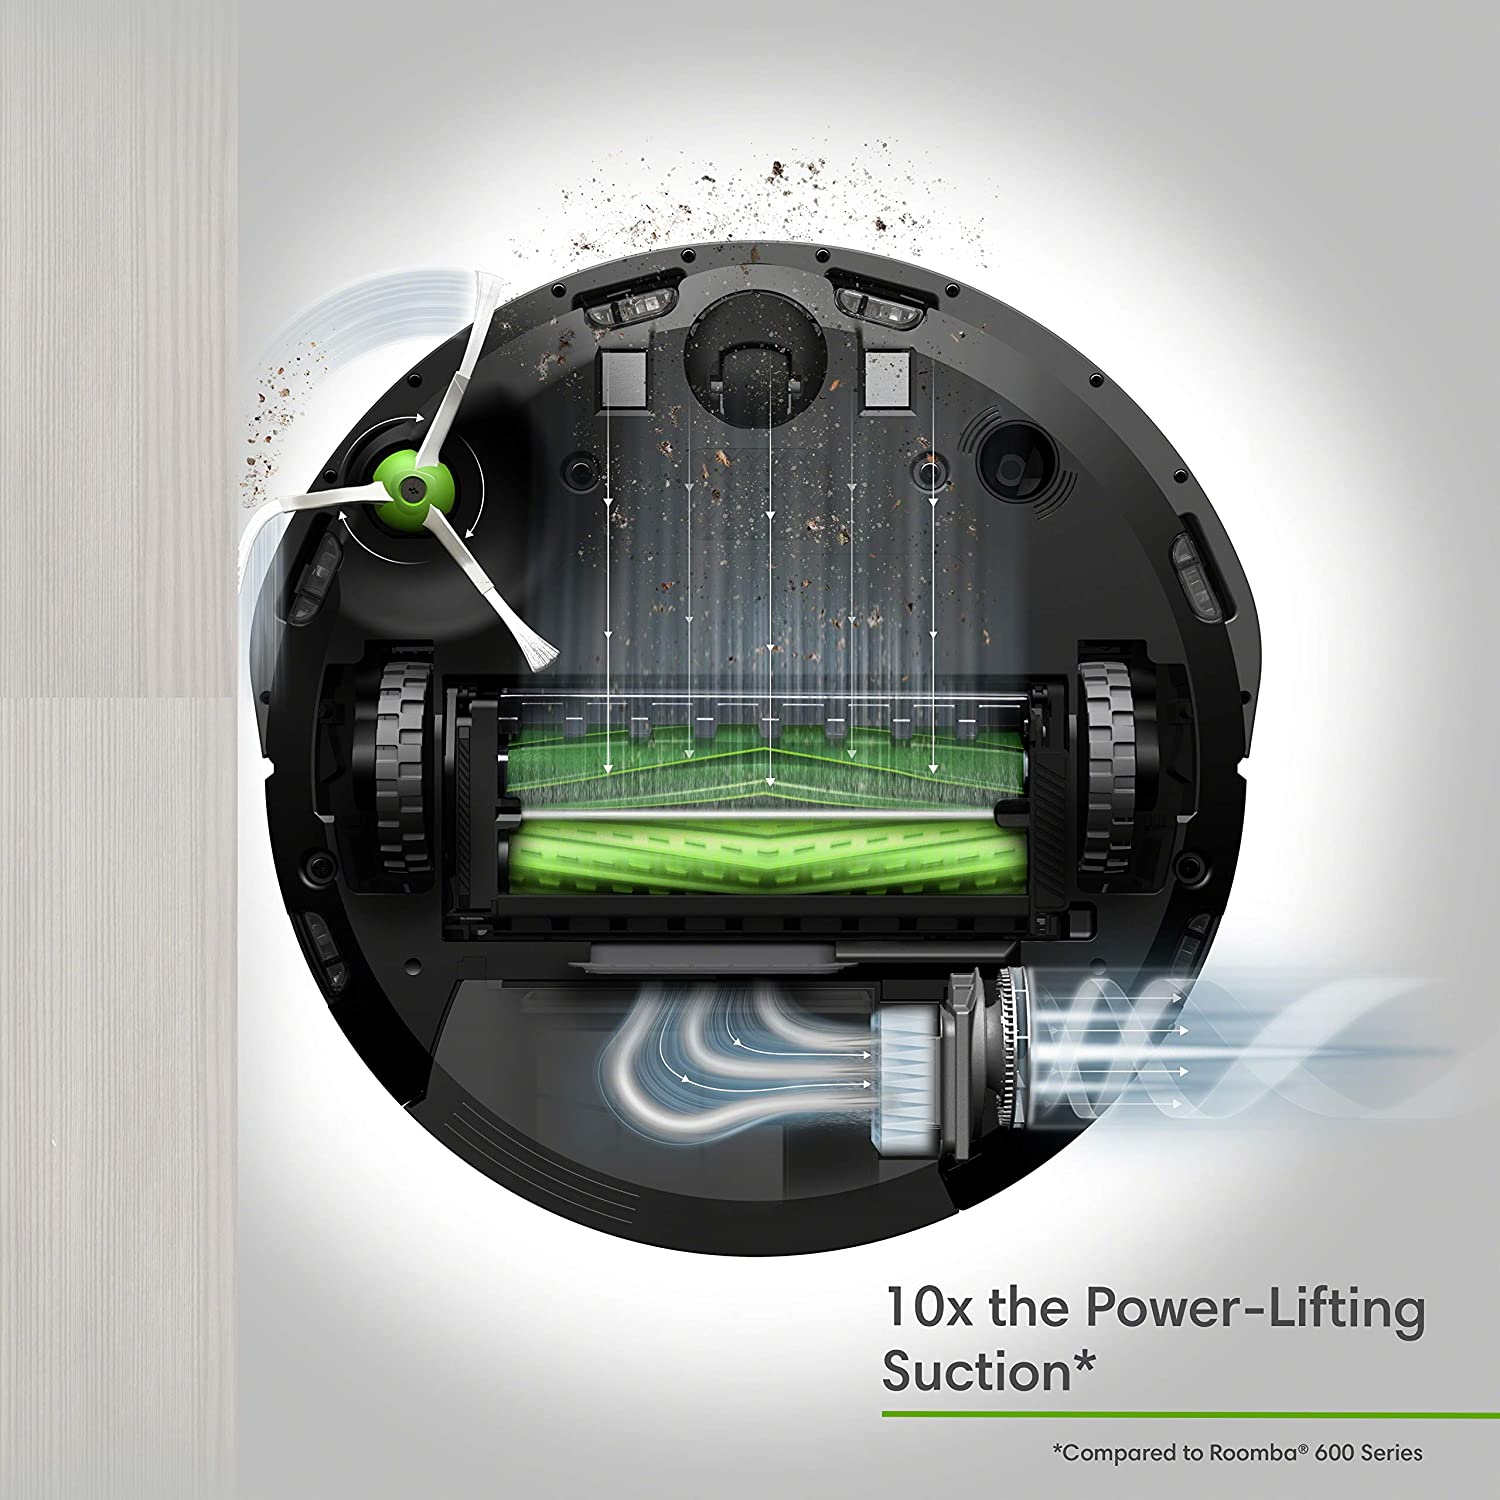 under-side-of-the-roomba-i7